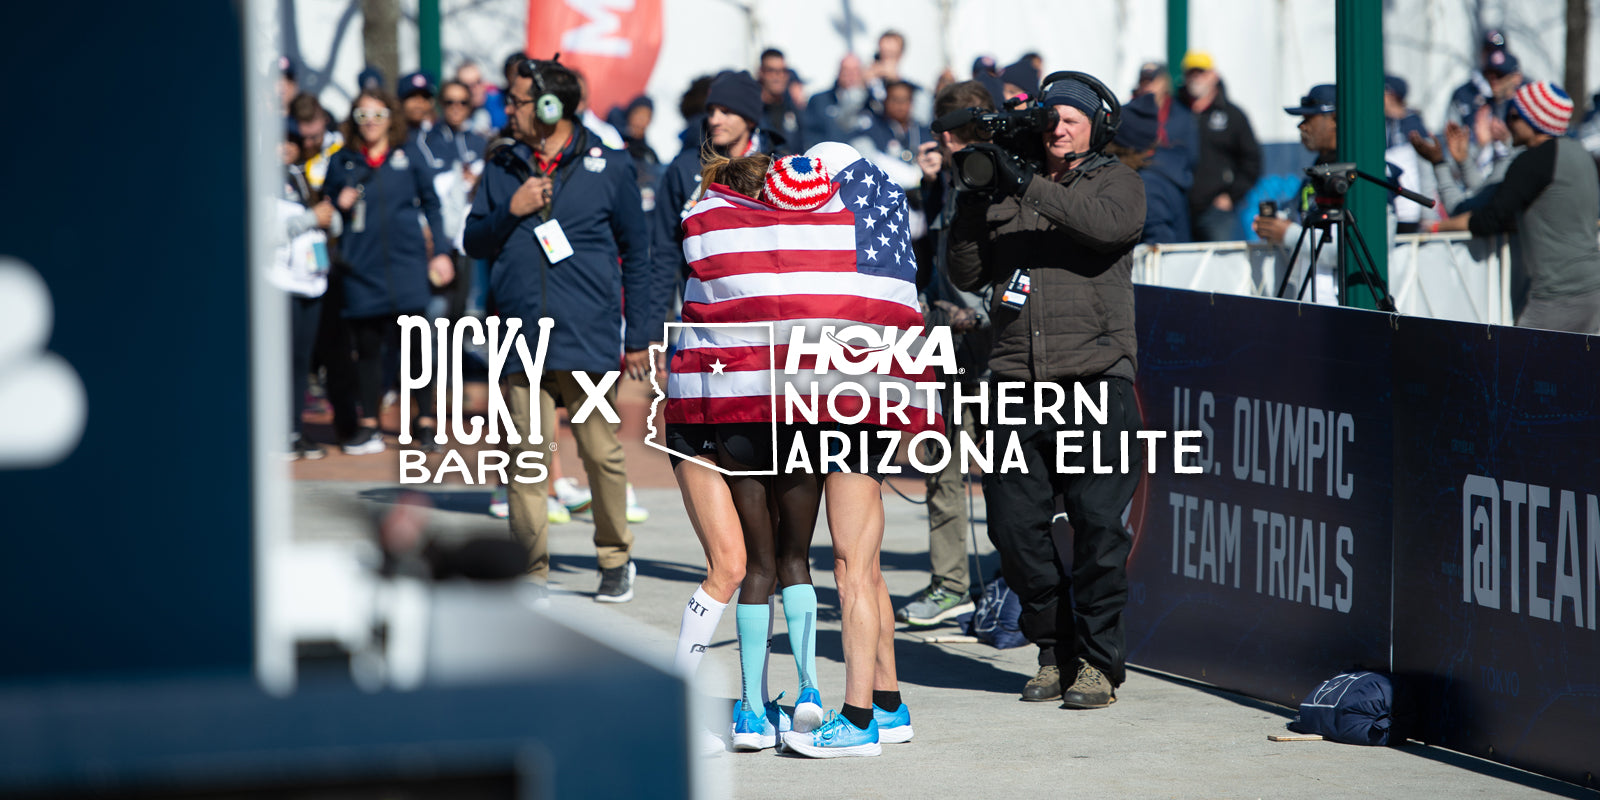 NAZ Elite Joins the Picky Team!